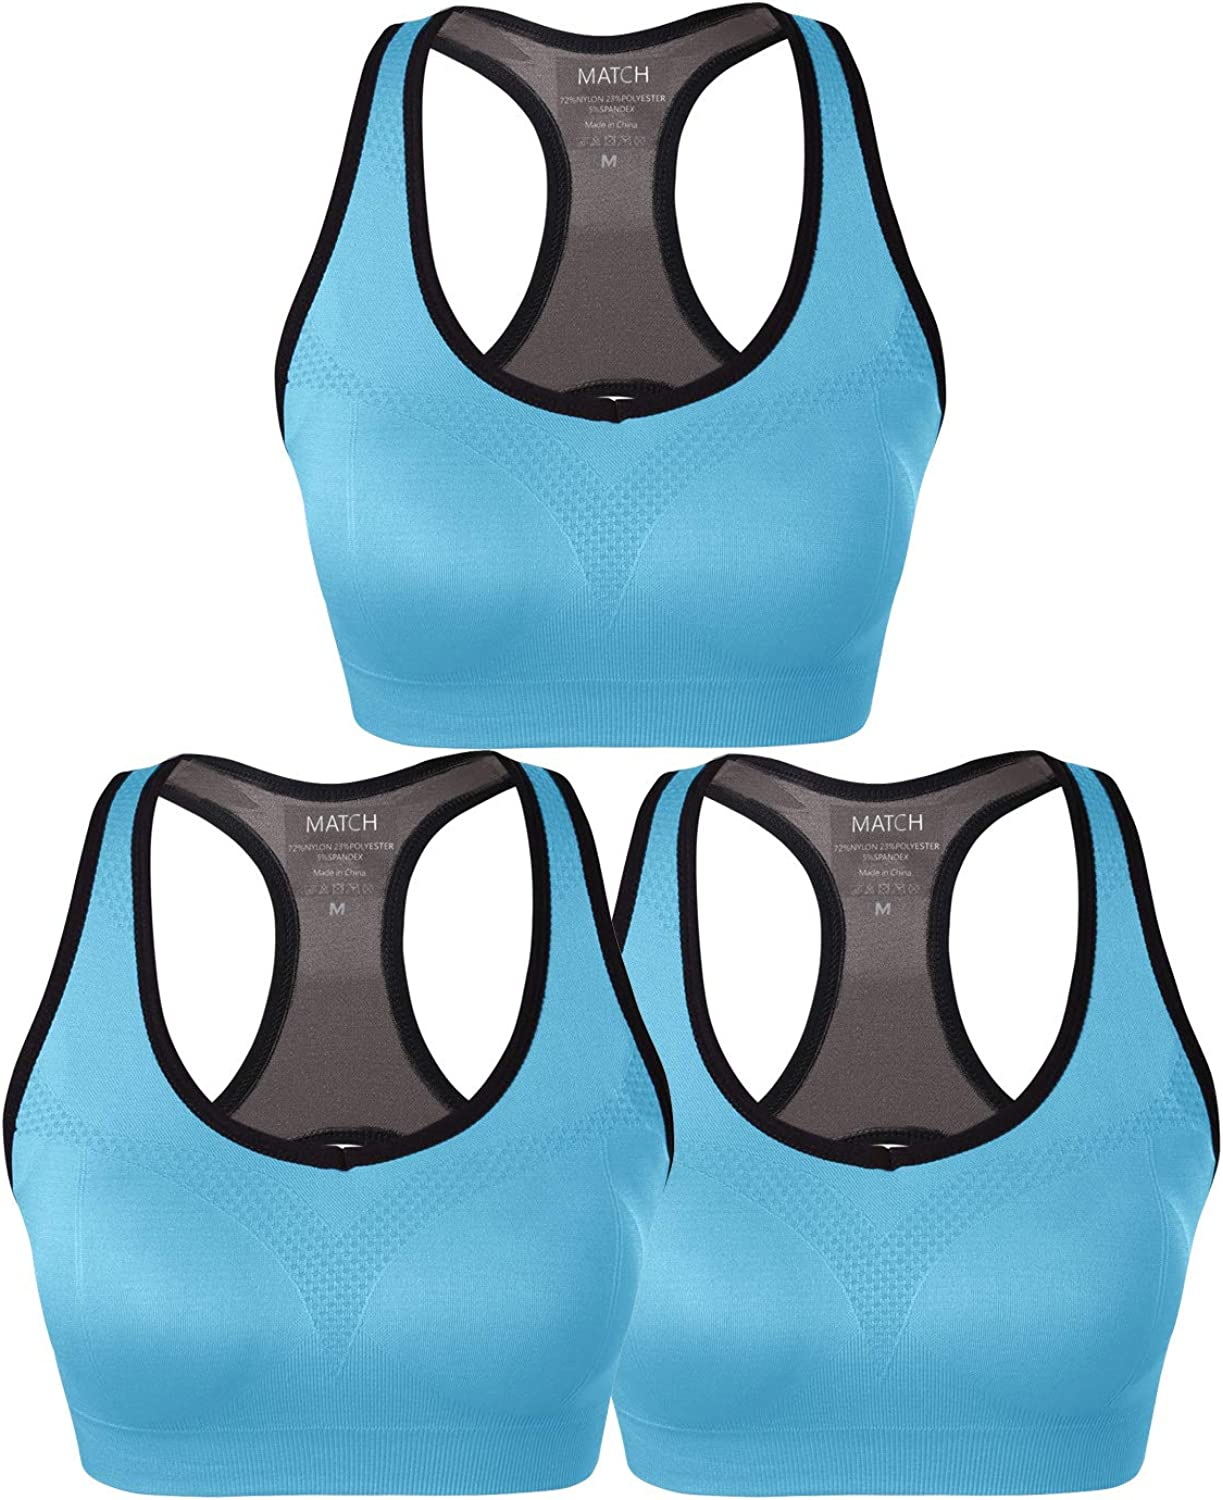 Match Women Wirefree Padded Racerback Sports Bra for Yoga Workout Gym Activewear #0001